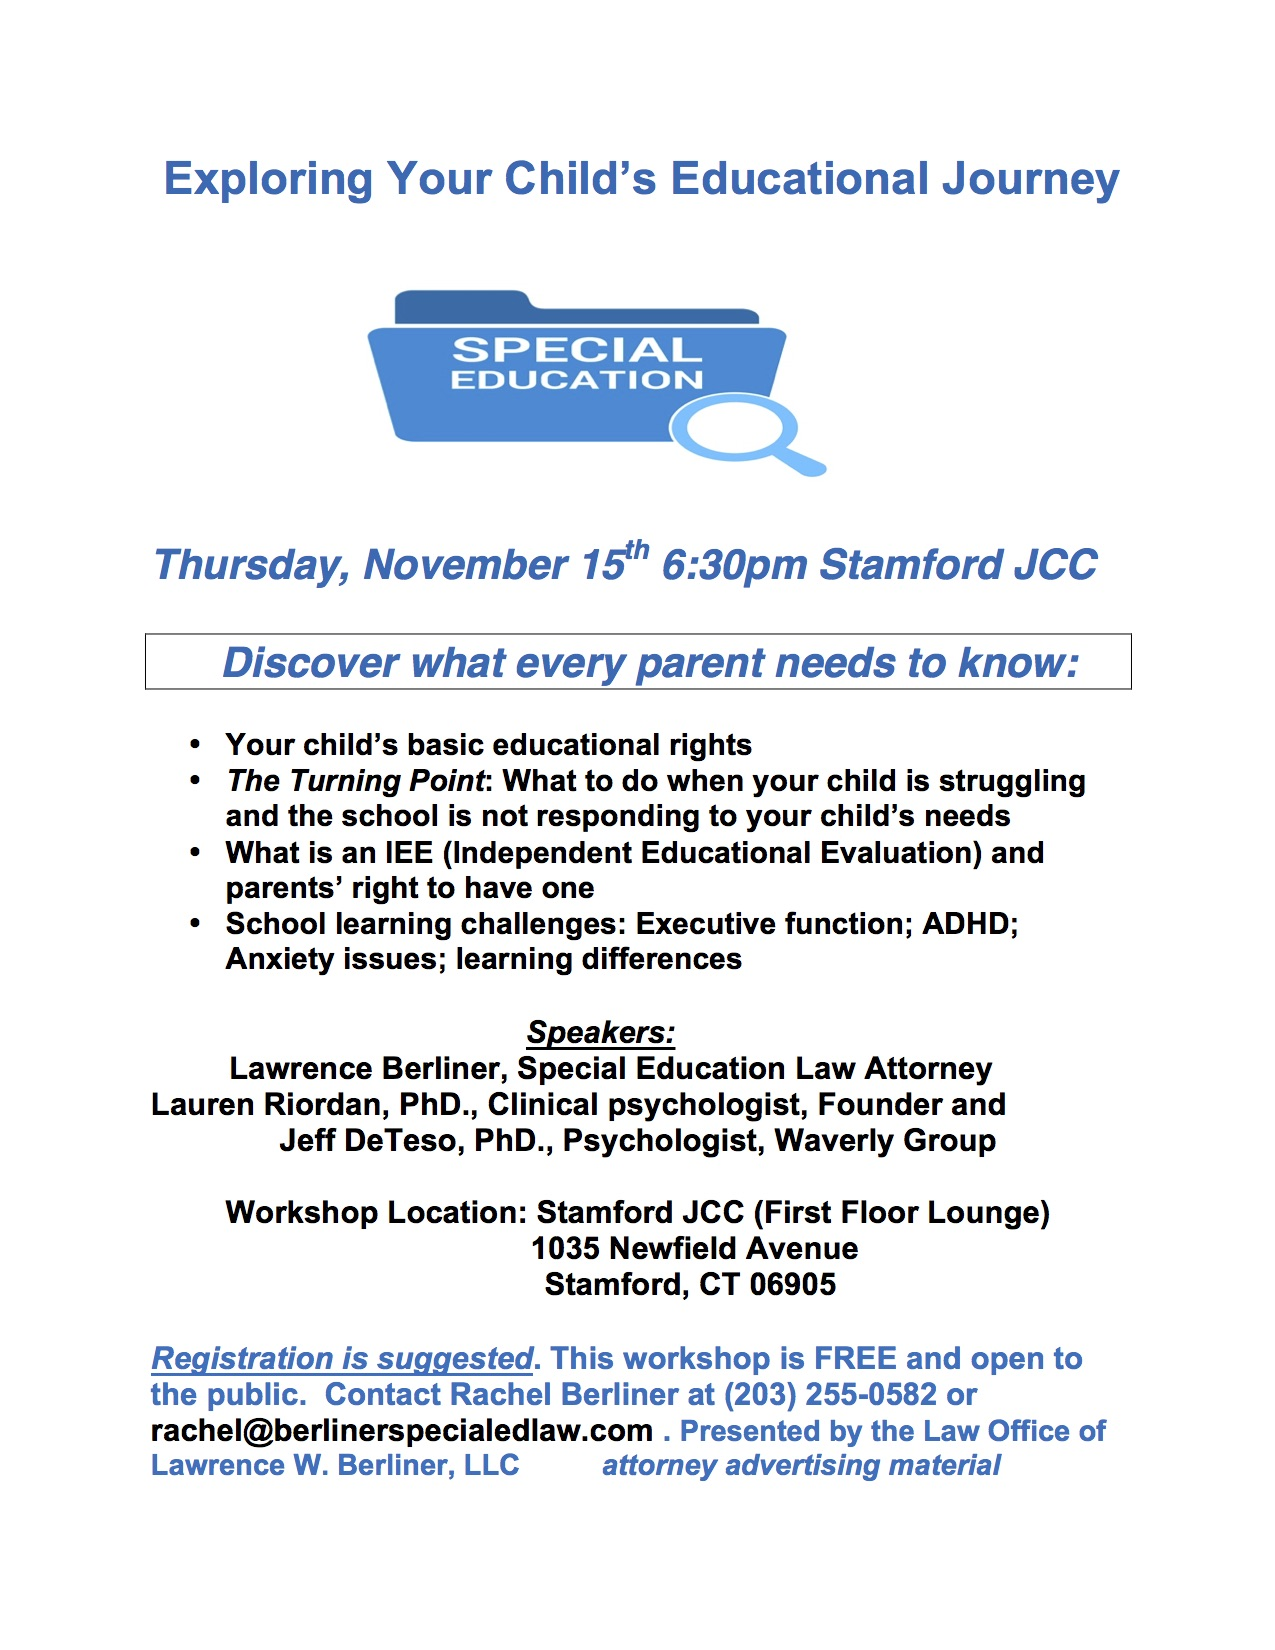 Parents Know Your Special Education >> Exploring Your Child S Educational Journey A Special Education